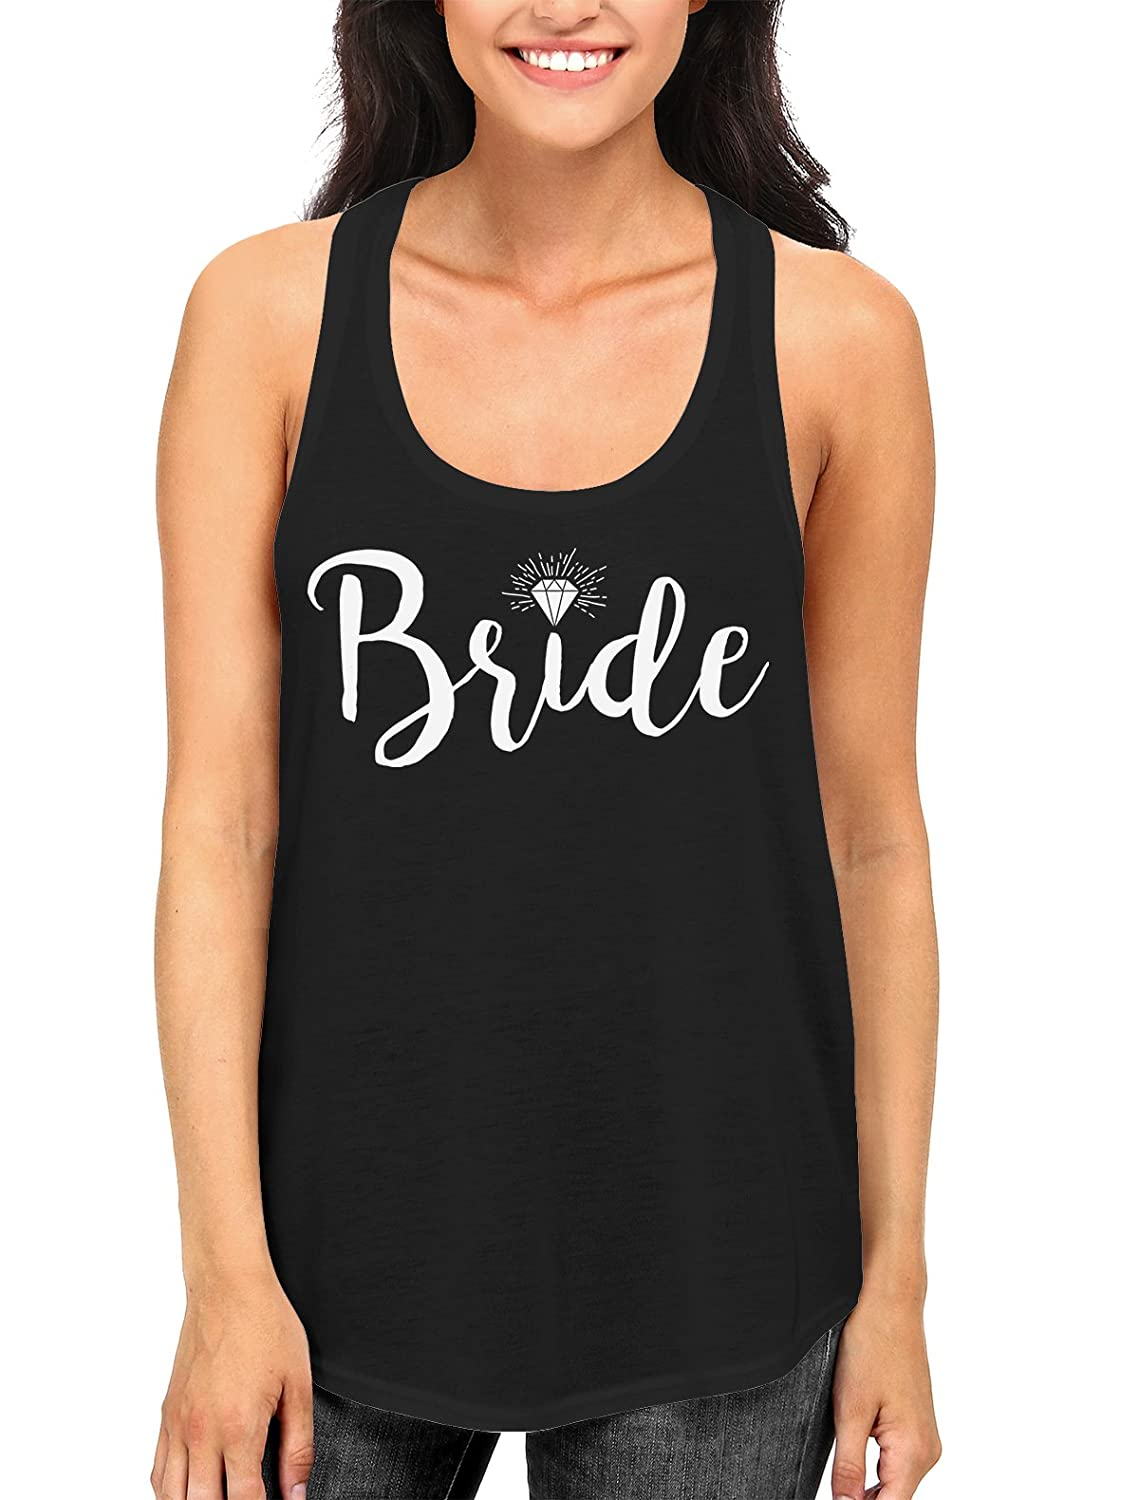 Diamond Bride Women's Racerback Tank Top, SpiritForged Apparel